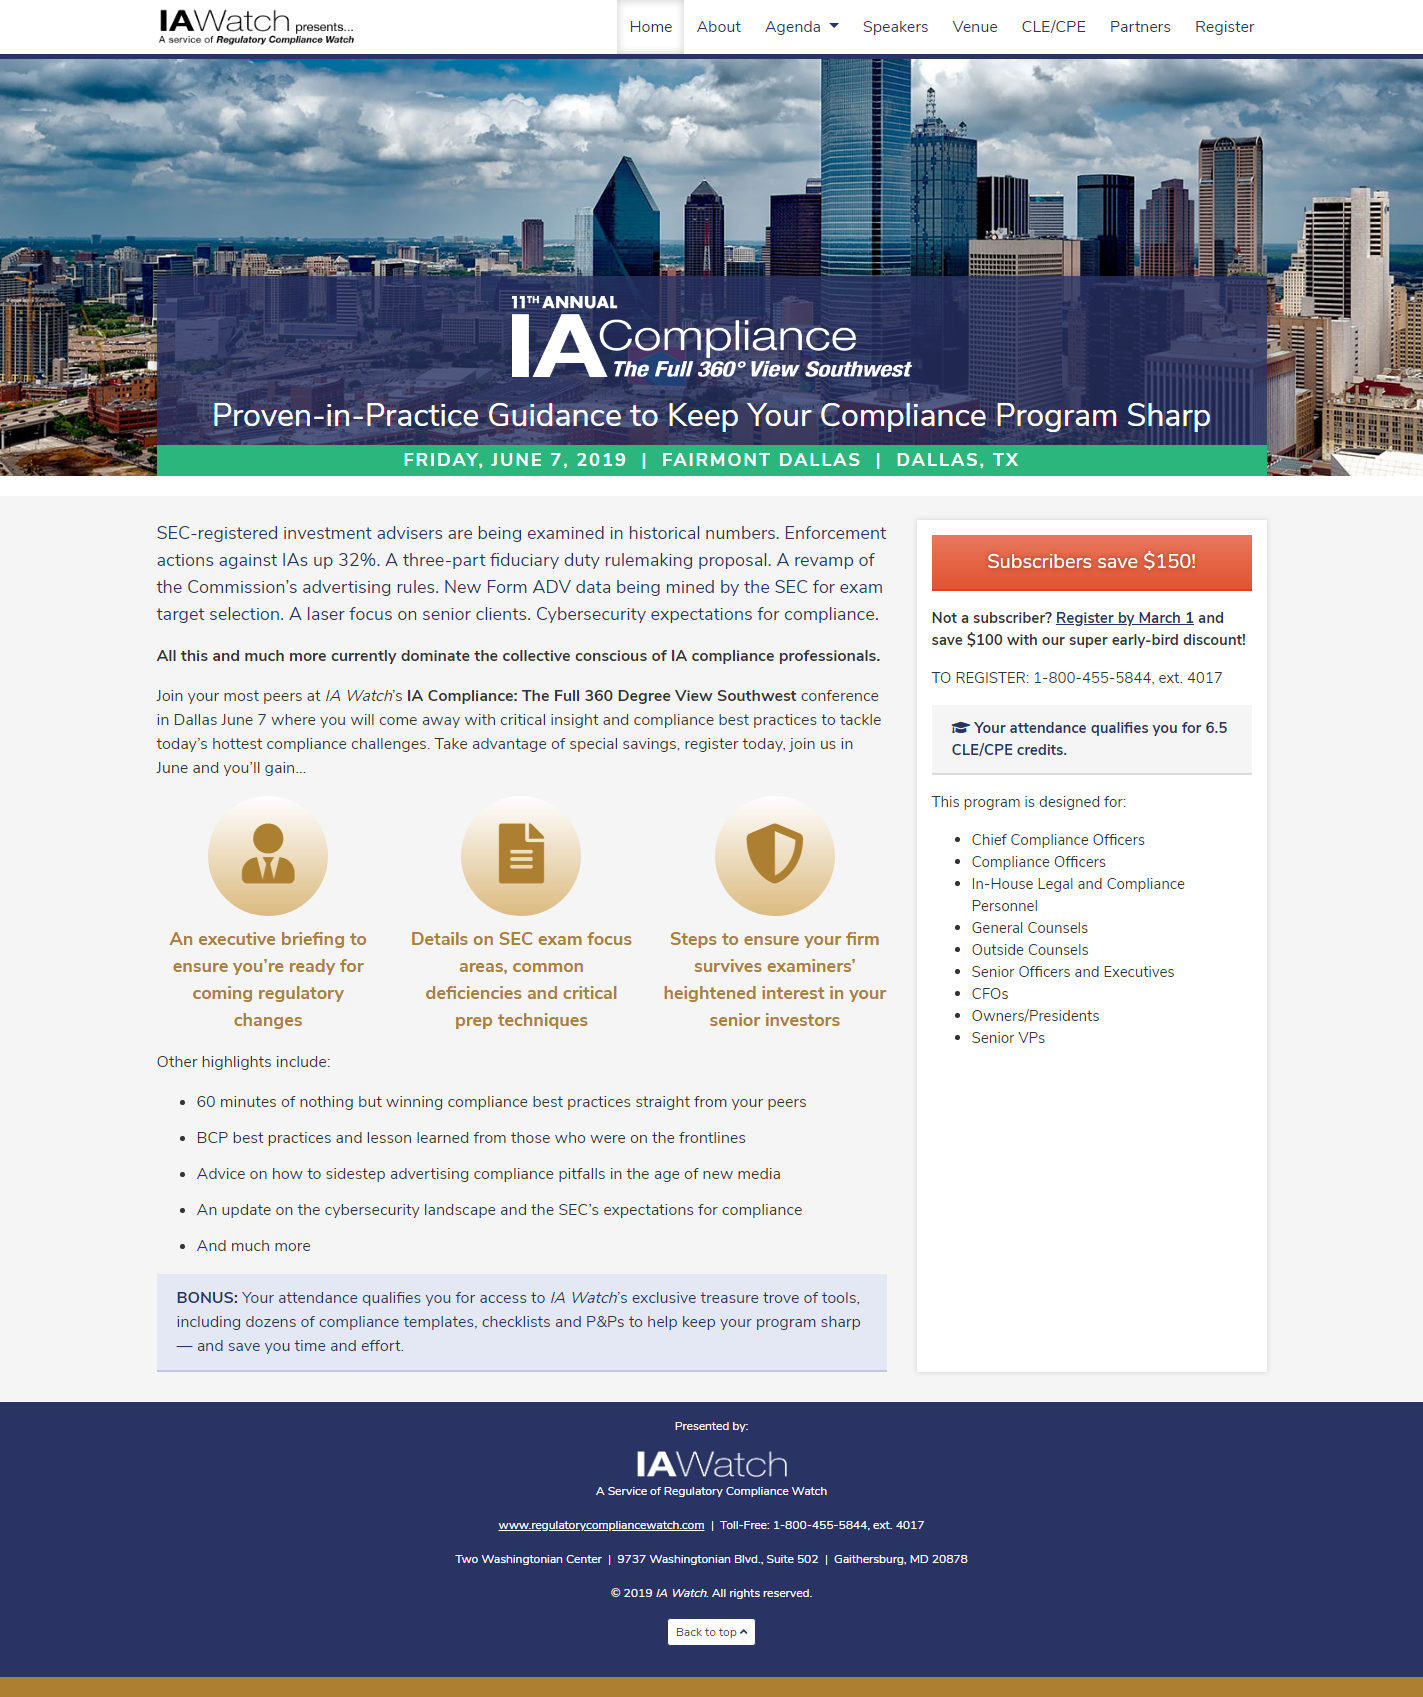 IA Compliance Conference Website